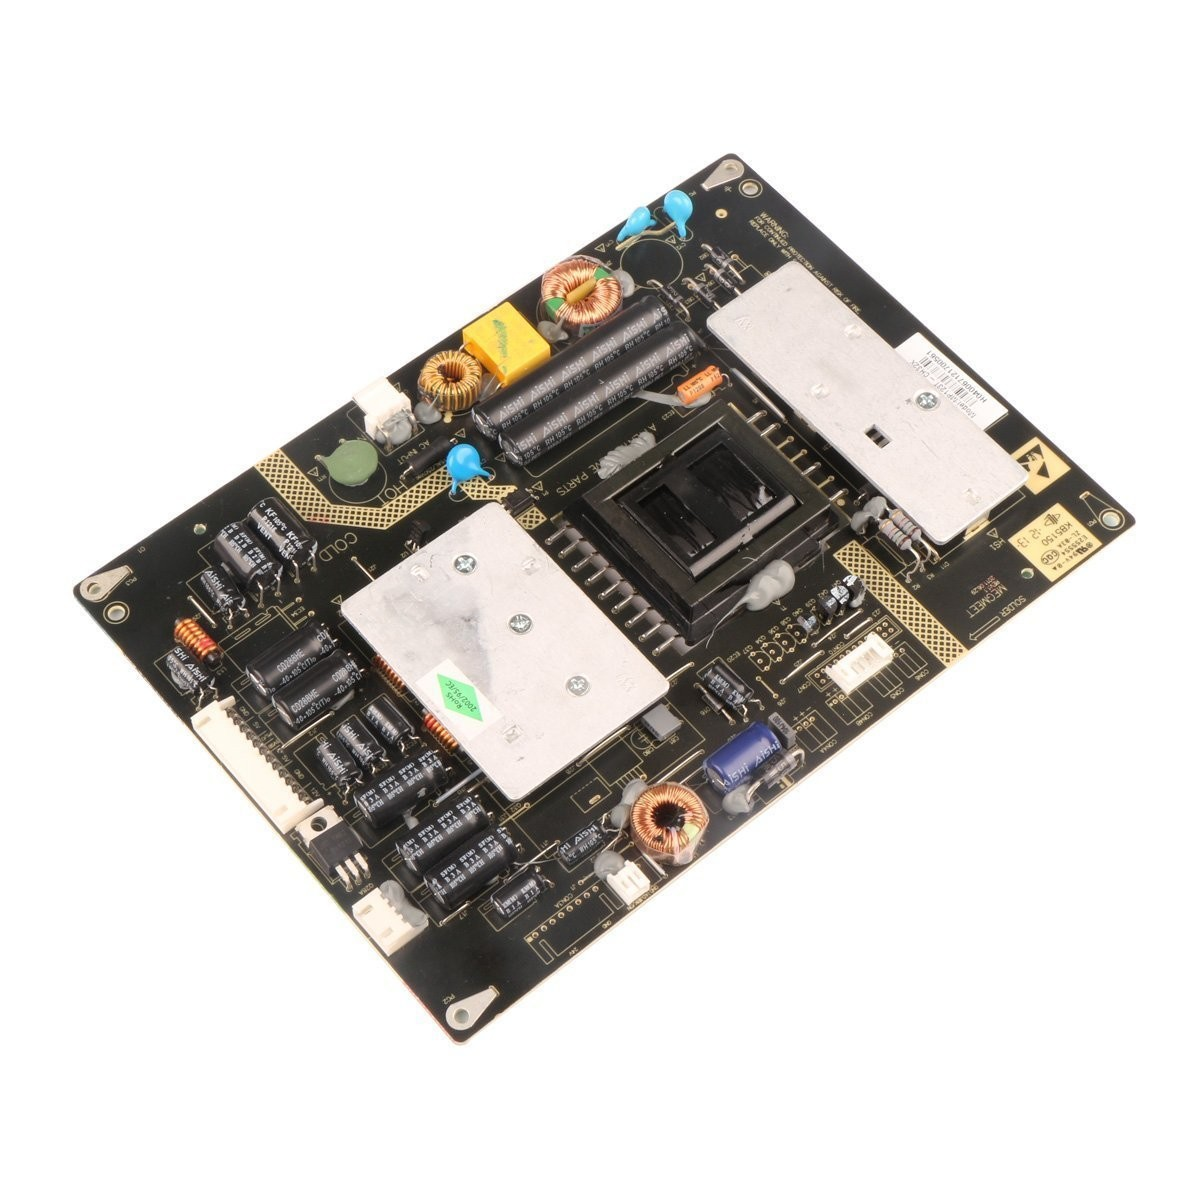 Riorand Dc Power Supply Board Repair Kit For 26 32 37 Inch Led Tv Circuit Zoom